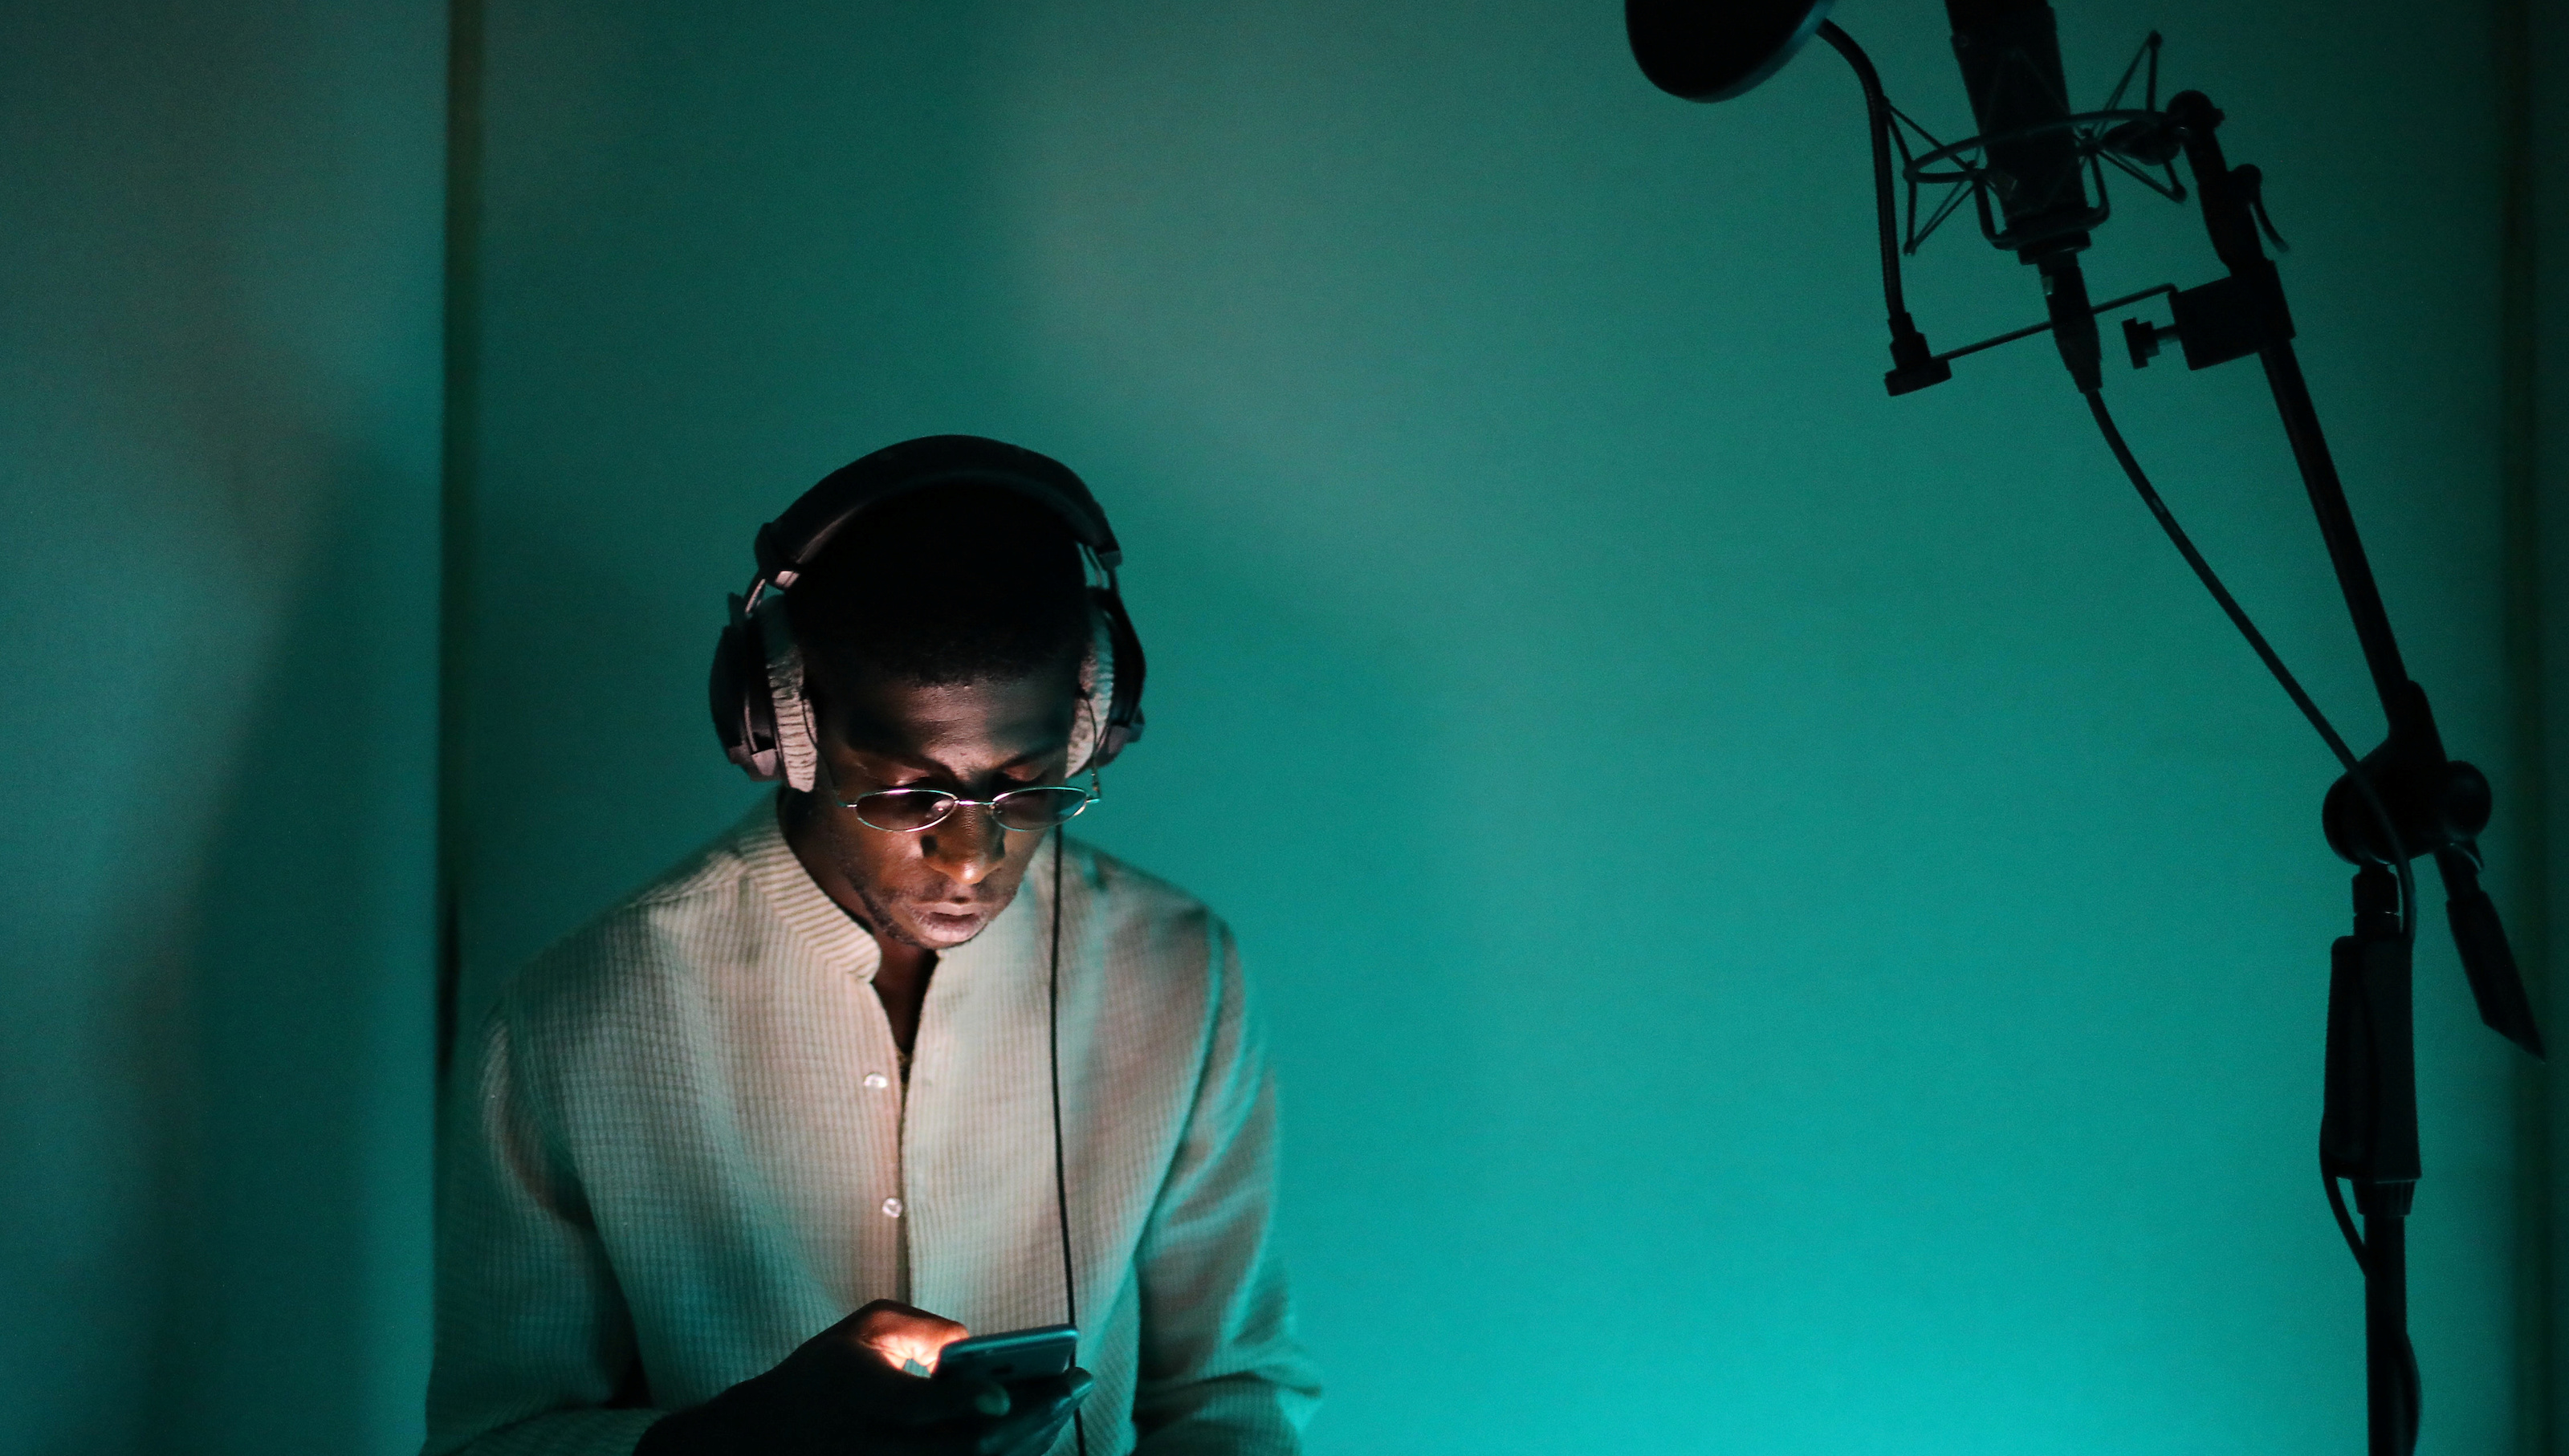 """Rapper Ichon records a song at a studio in Montreuil, France, August 28, 2016.  REUTERS/Joe Penney SEARCH """"CREATIVE BANLIEUE"""" FOR THIS STORY. SEARCH """"WIDER IMAGE"""" FOR ALL STORIES.?THE IMAGES SHOULD ONLY BE USED TOGETHER WITH THE STORY - NO STAND-ALONE USES. - RTSQUMN"""